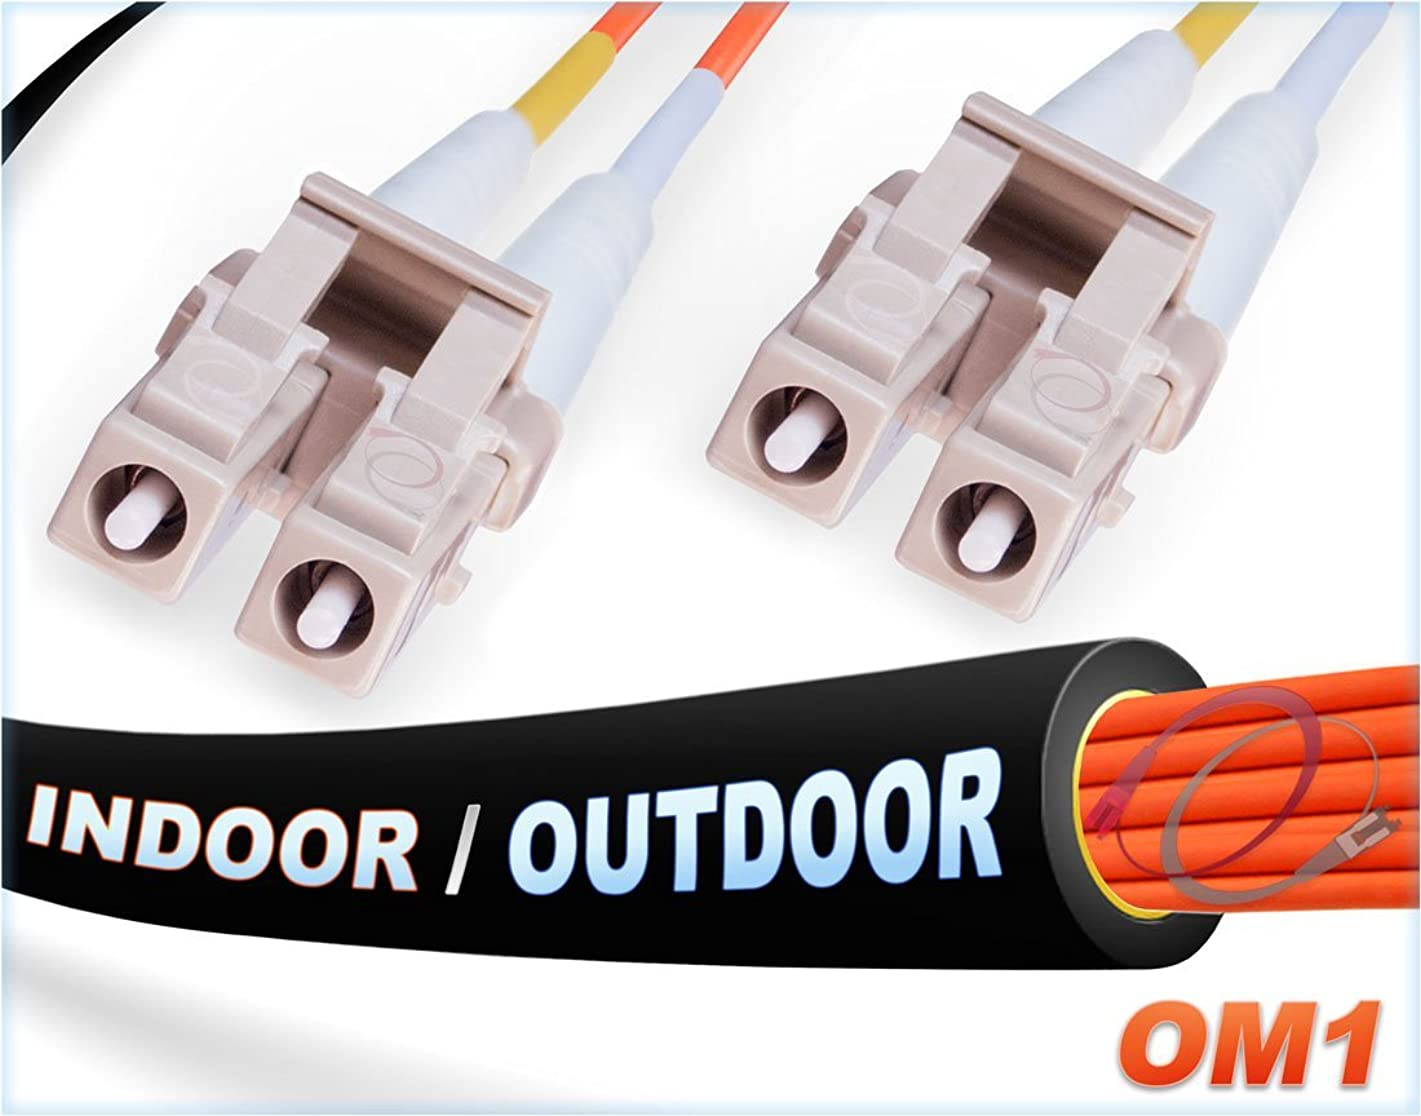 FiberCablesDirect -15M OM1 LC LC Fiber Patch Cable   Indoor/Outdoor 1Gb Duplex 62.5/125 LC to LC Multimode Jumper 15 Meter (49.21ft)   Length Options: 0.5M-300M   1/10g sfp 1gbase mm ofnr Black lc-lc